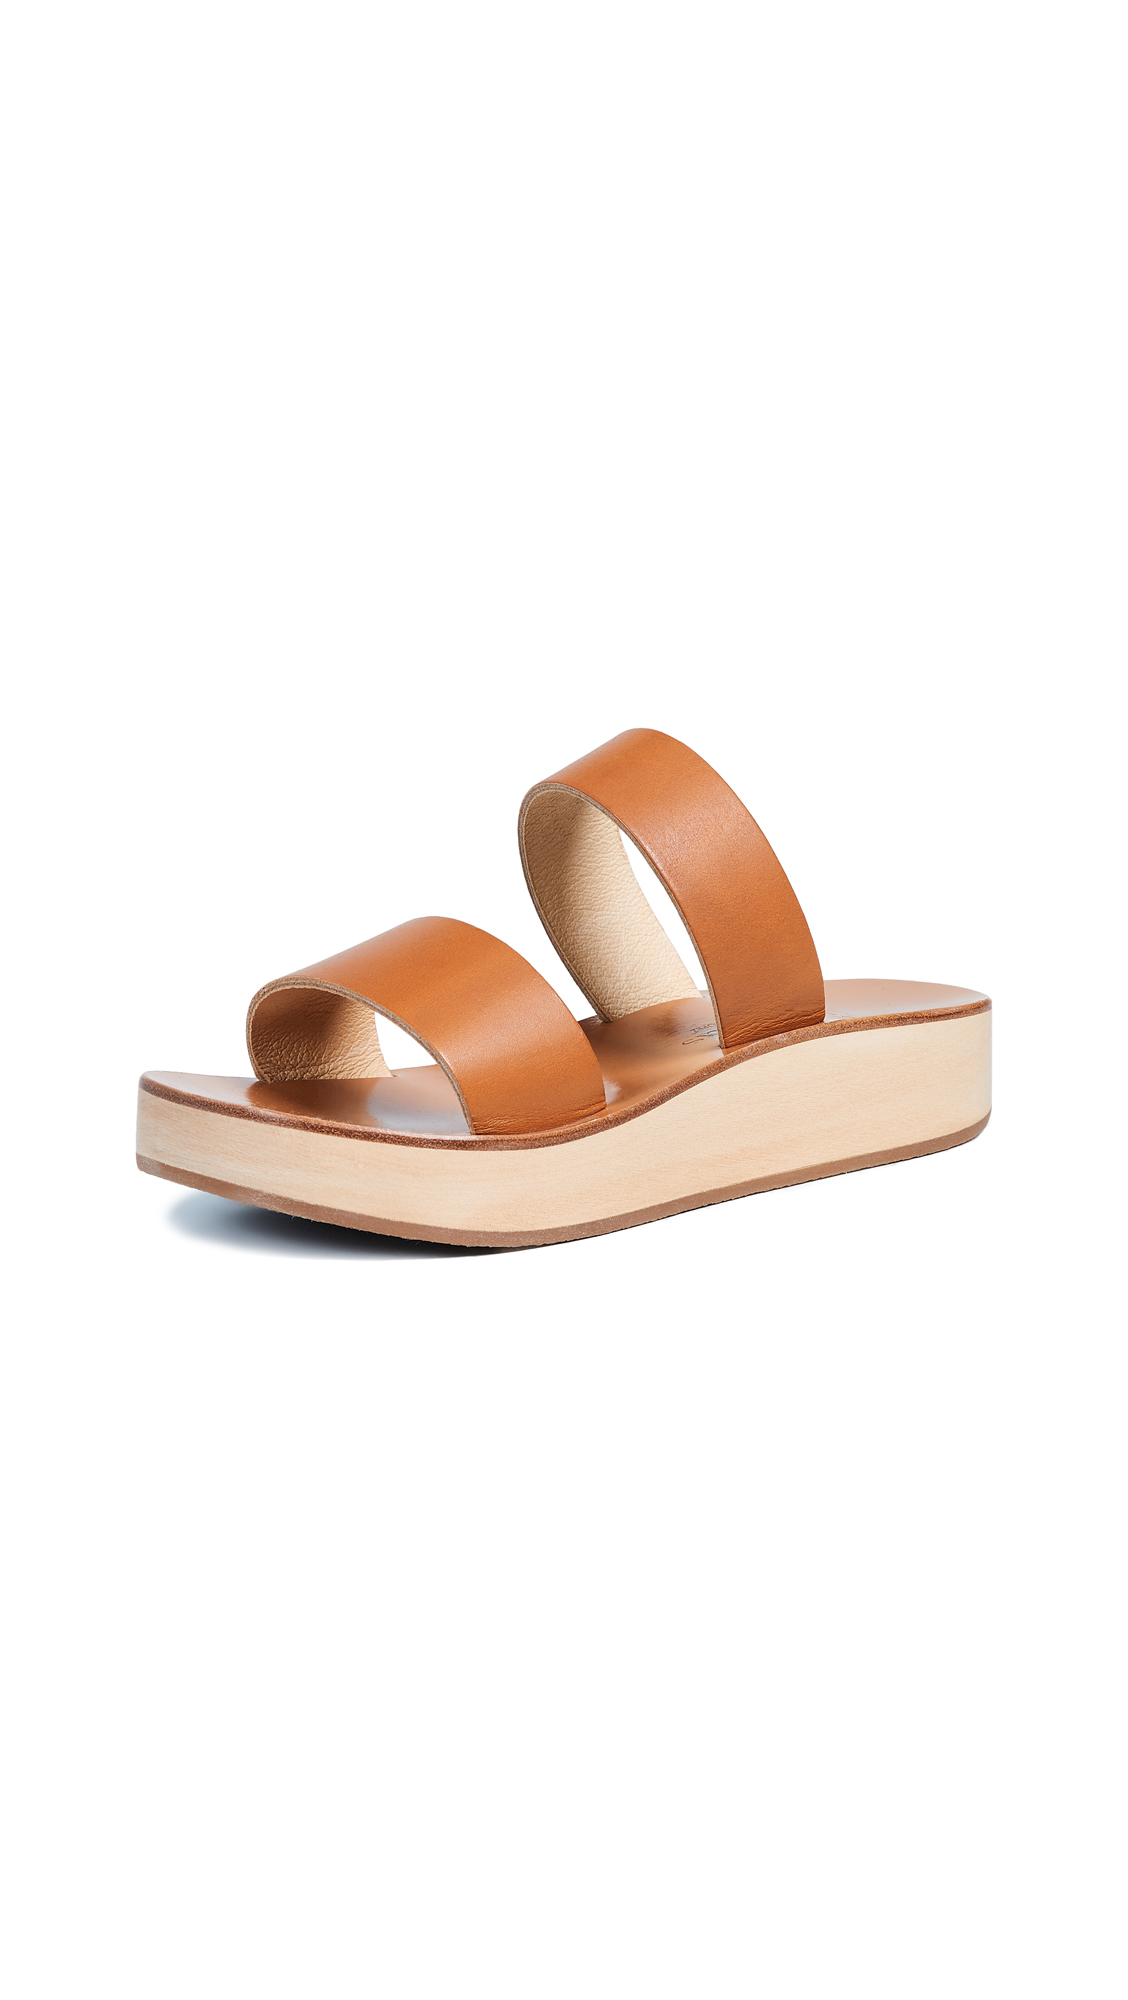 K. Jacques Sibel Platform Slides - Pul Naturel